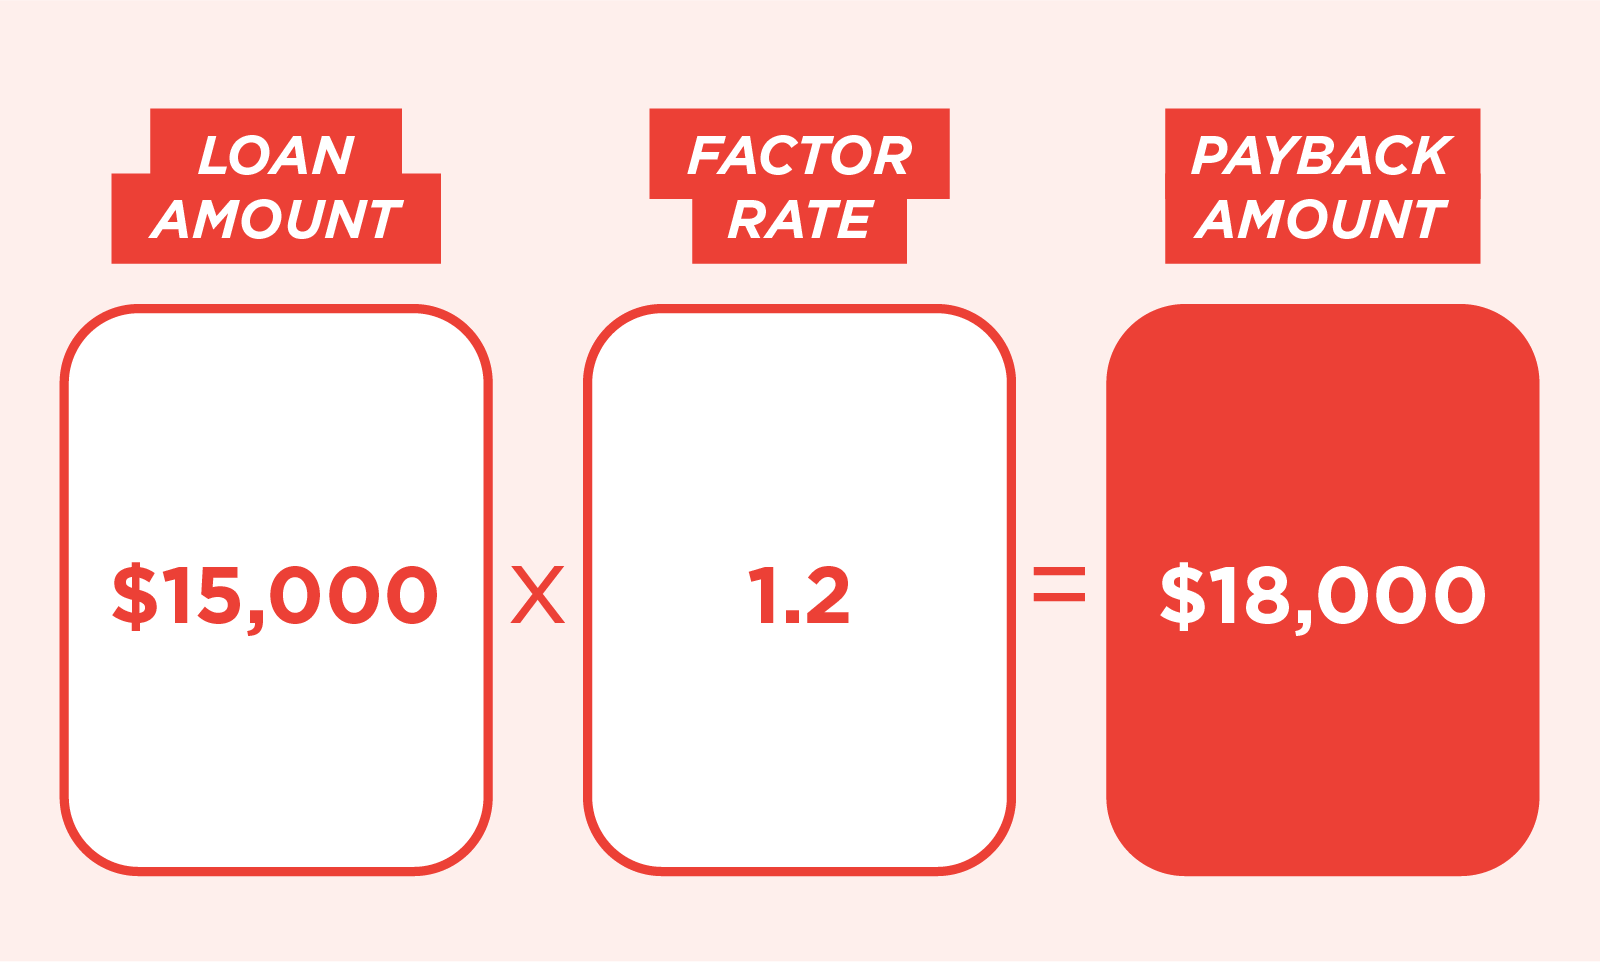 3 columns showing loan amount plus factor rate for total loan amount